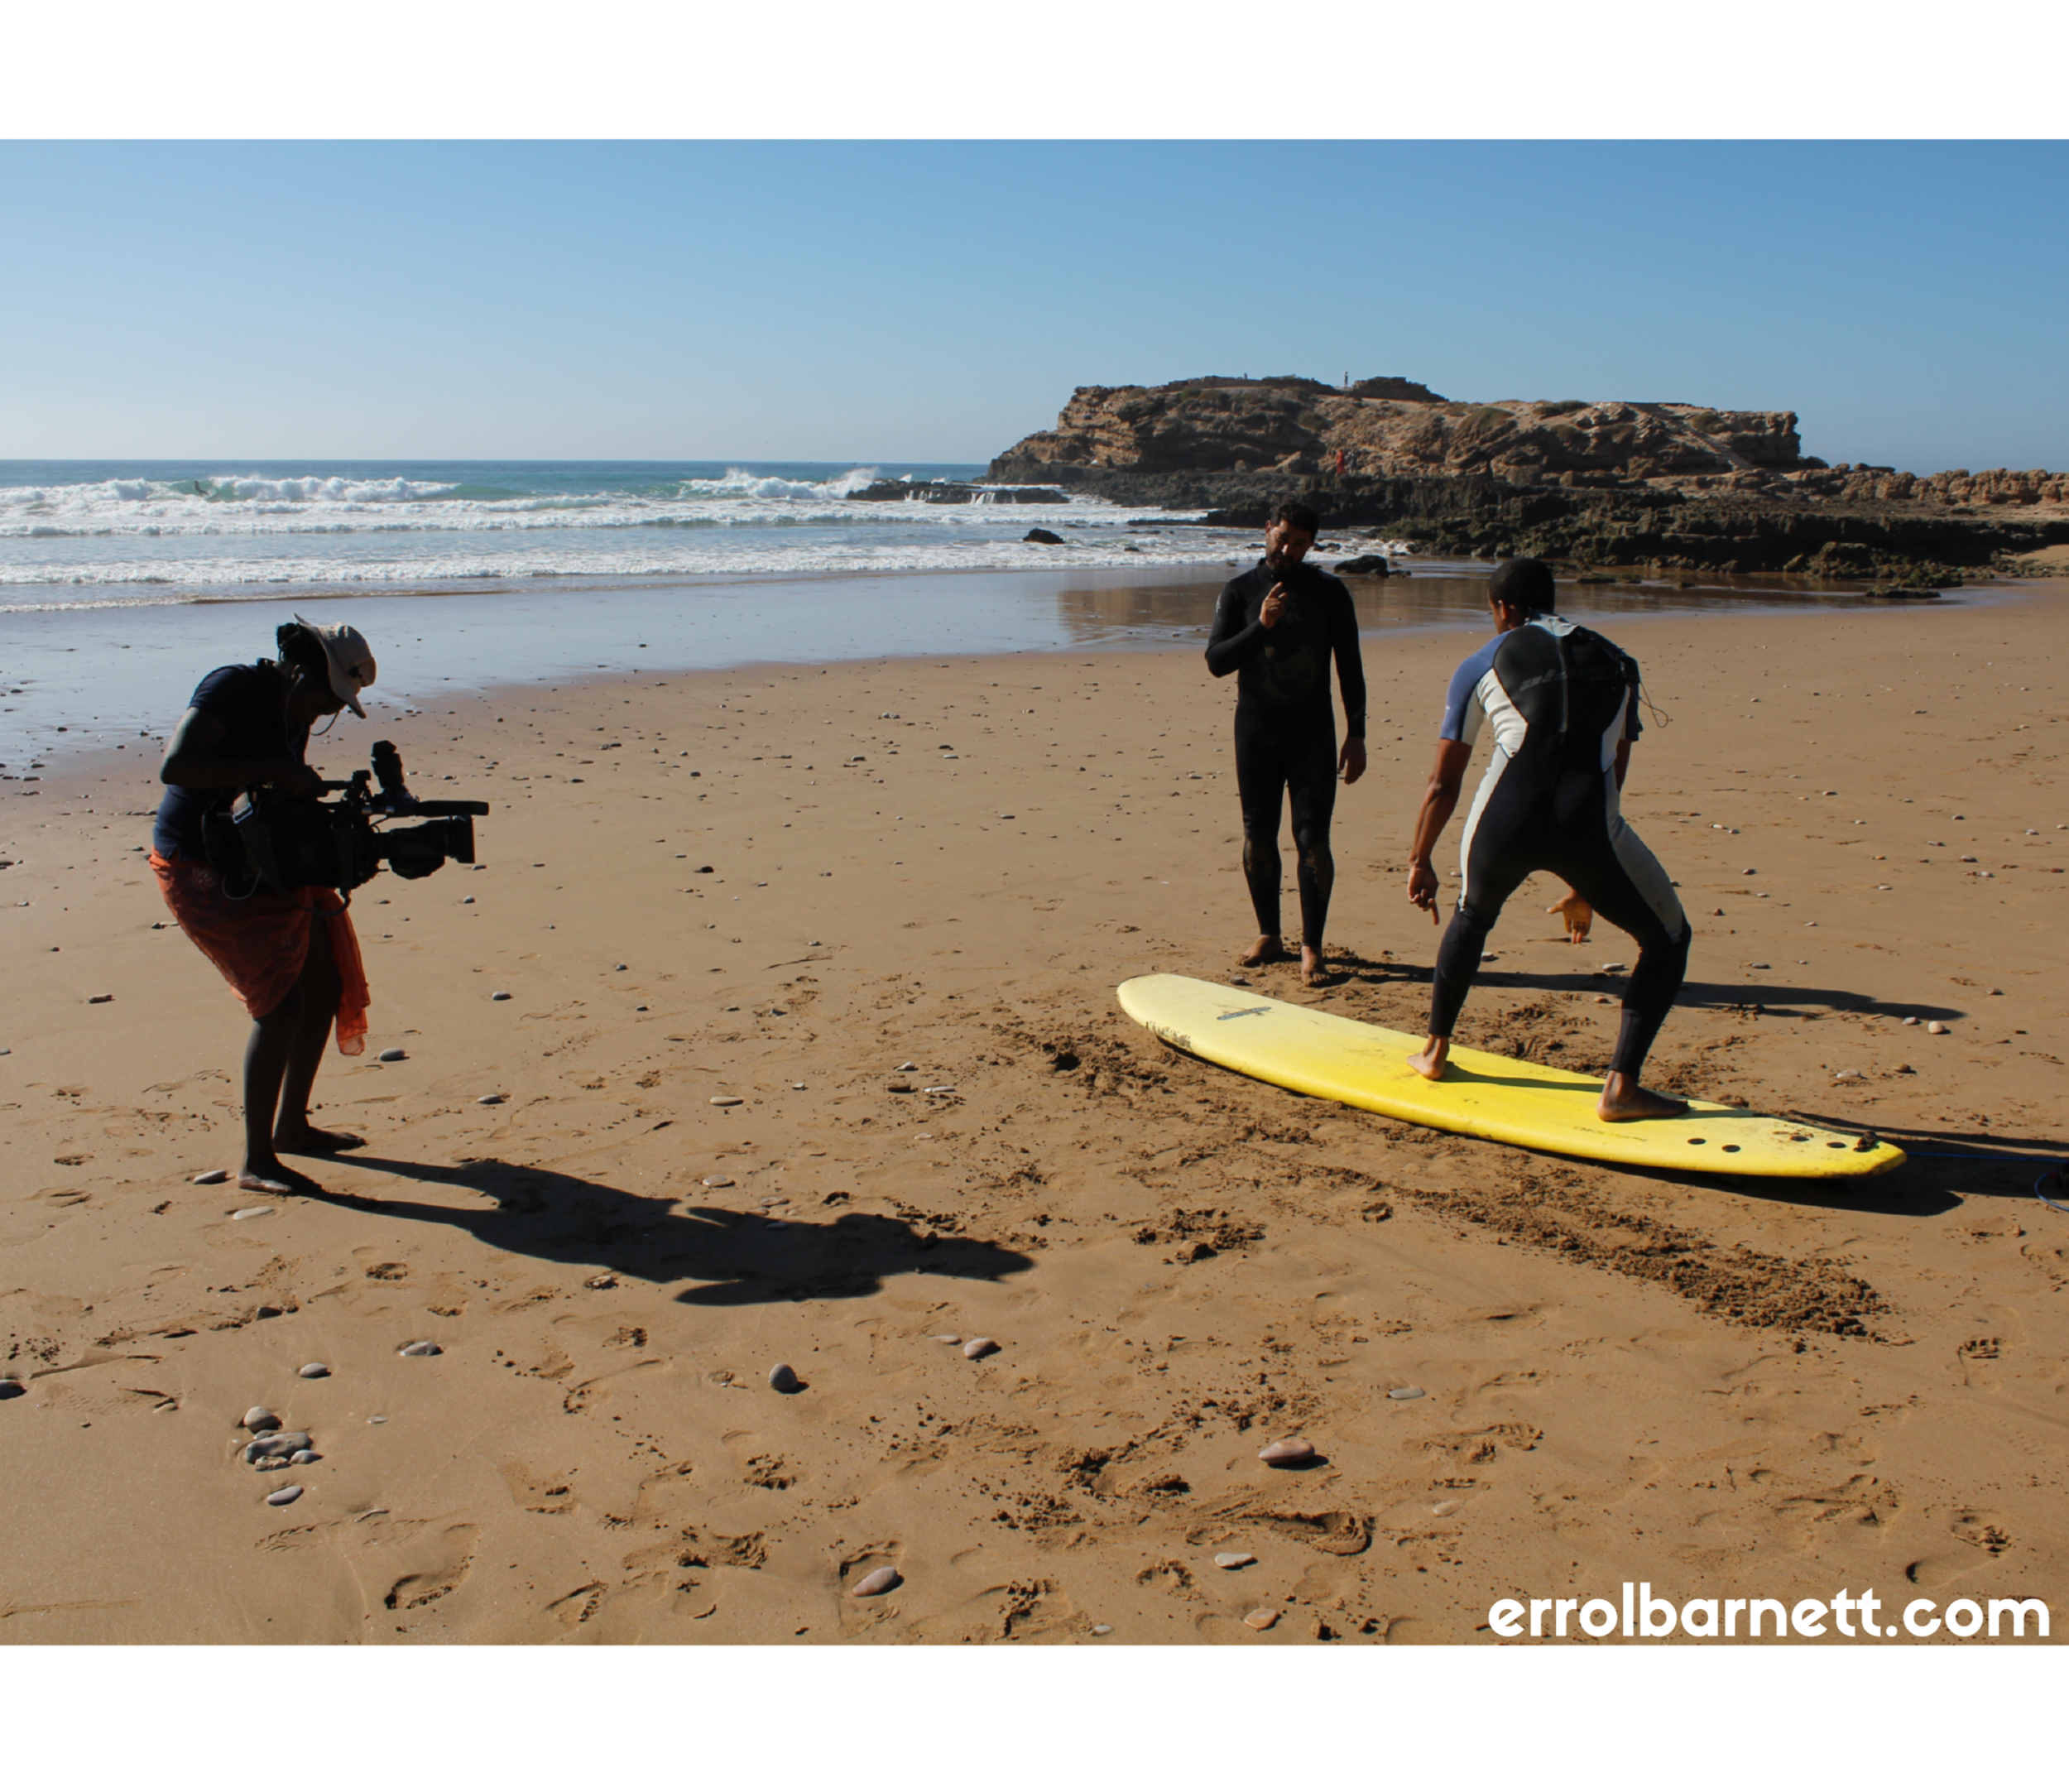 learning how to surf in morocco for an episode of 'inside africa'